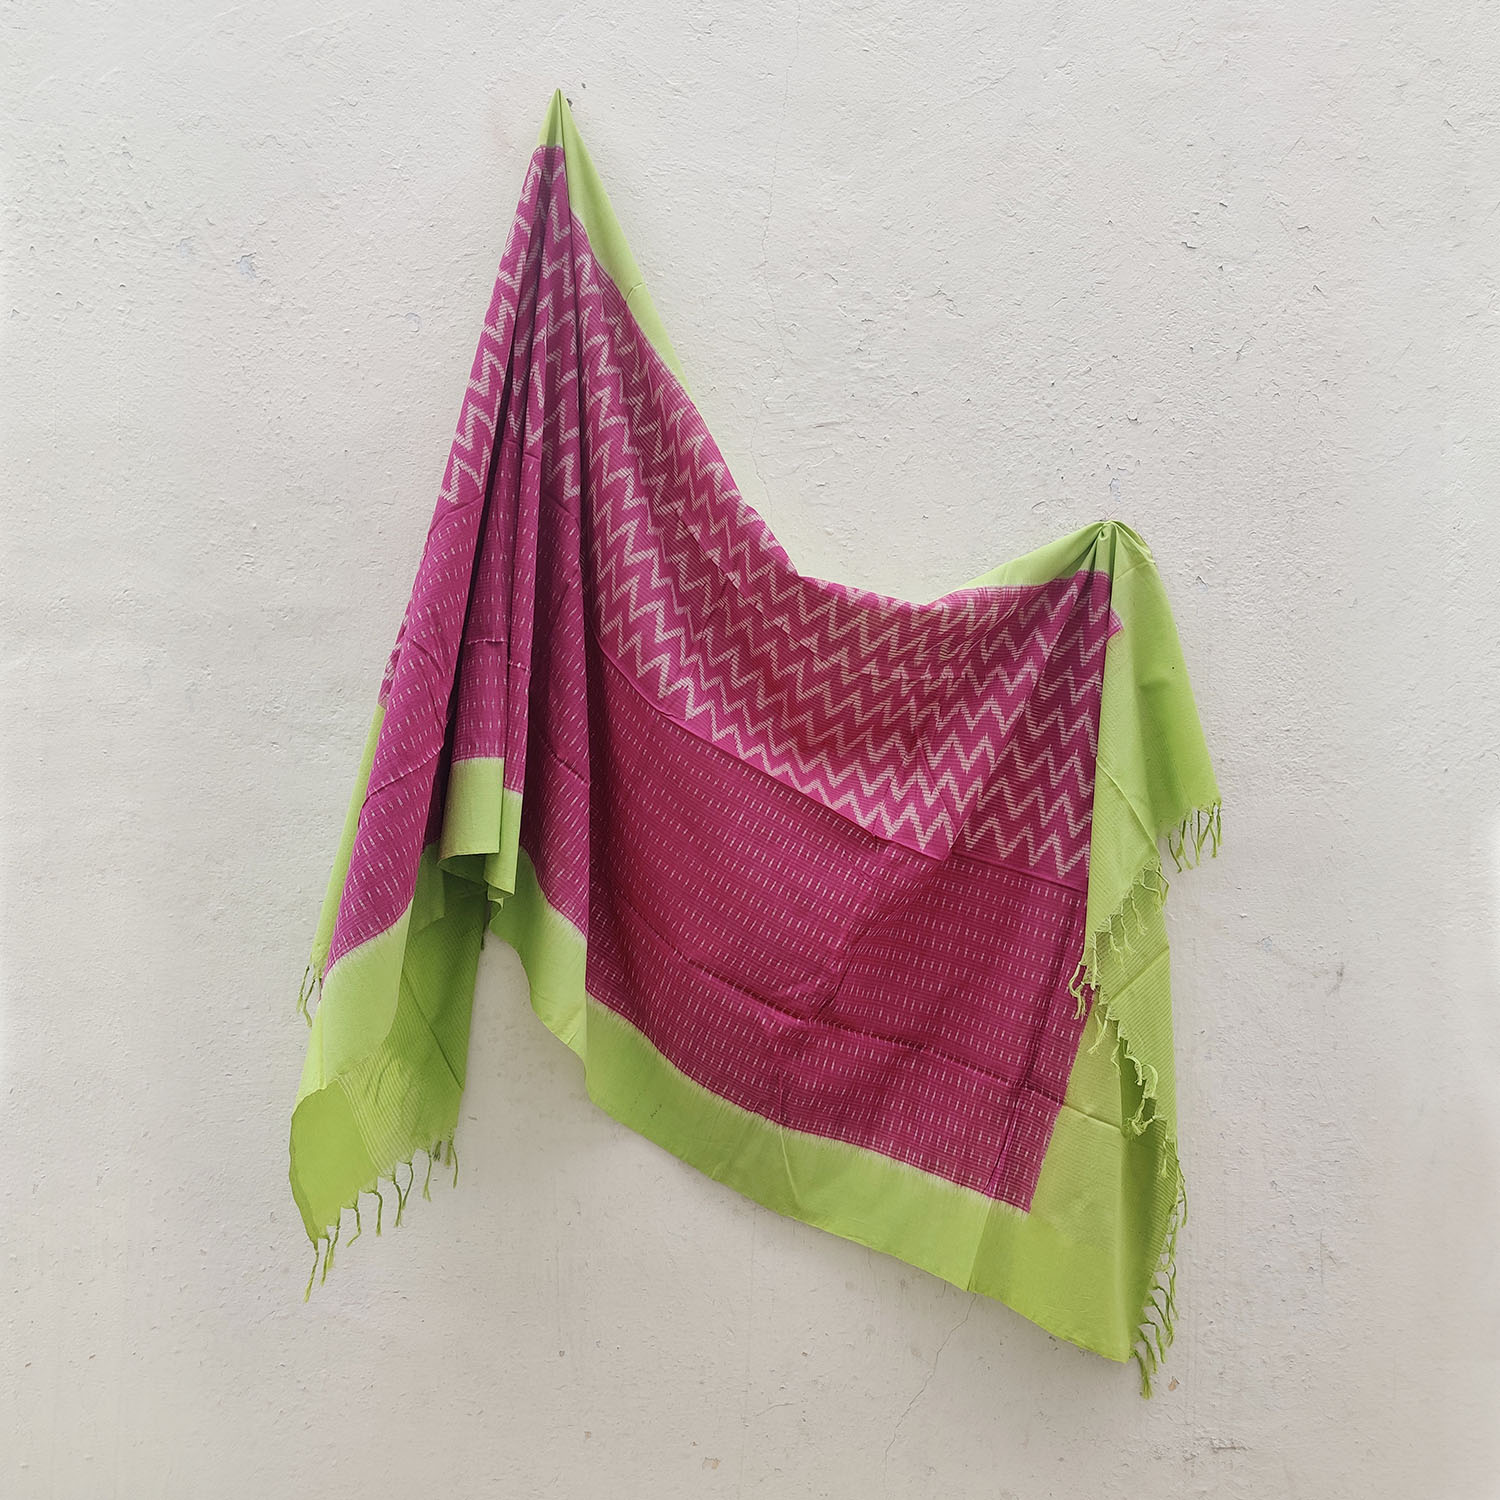 Raspberry & Green Half & Half Weave Cotton Ikat Dupatta